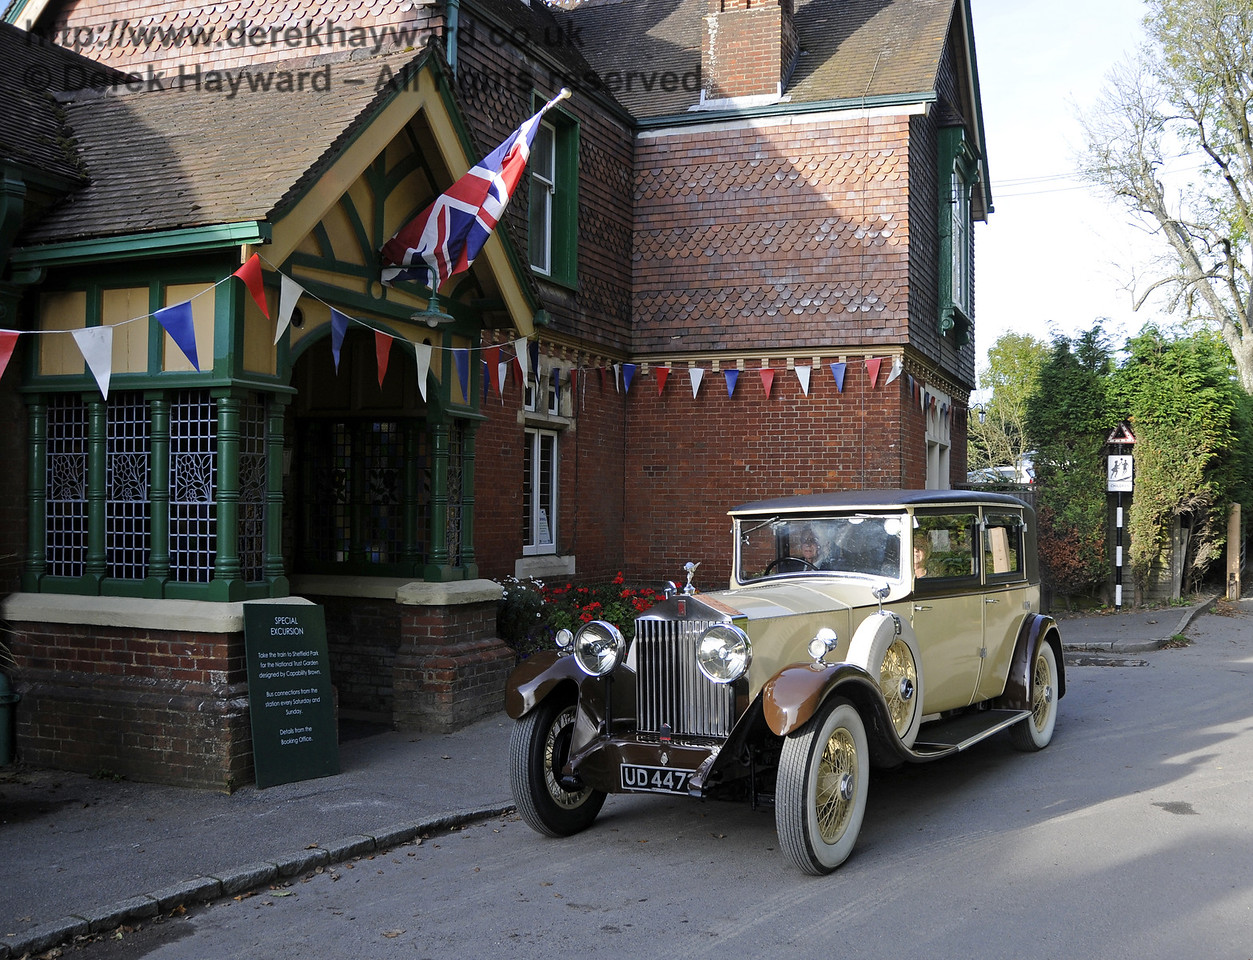 Rolls Royce Owners Club, Horsted Keynes, 05.10.2014  11672